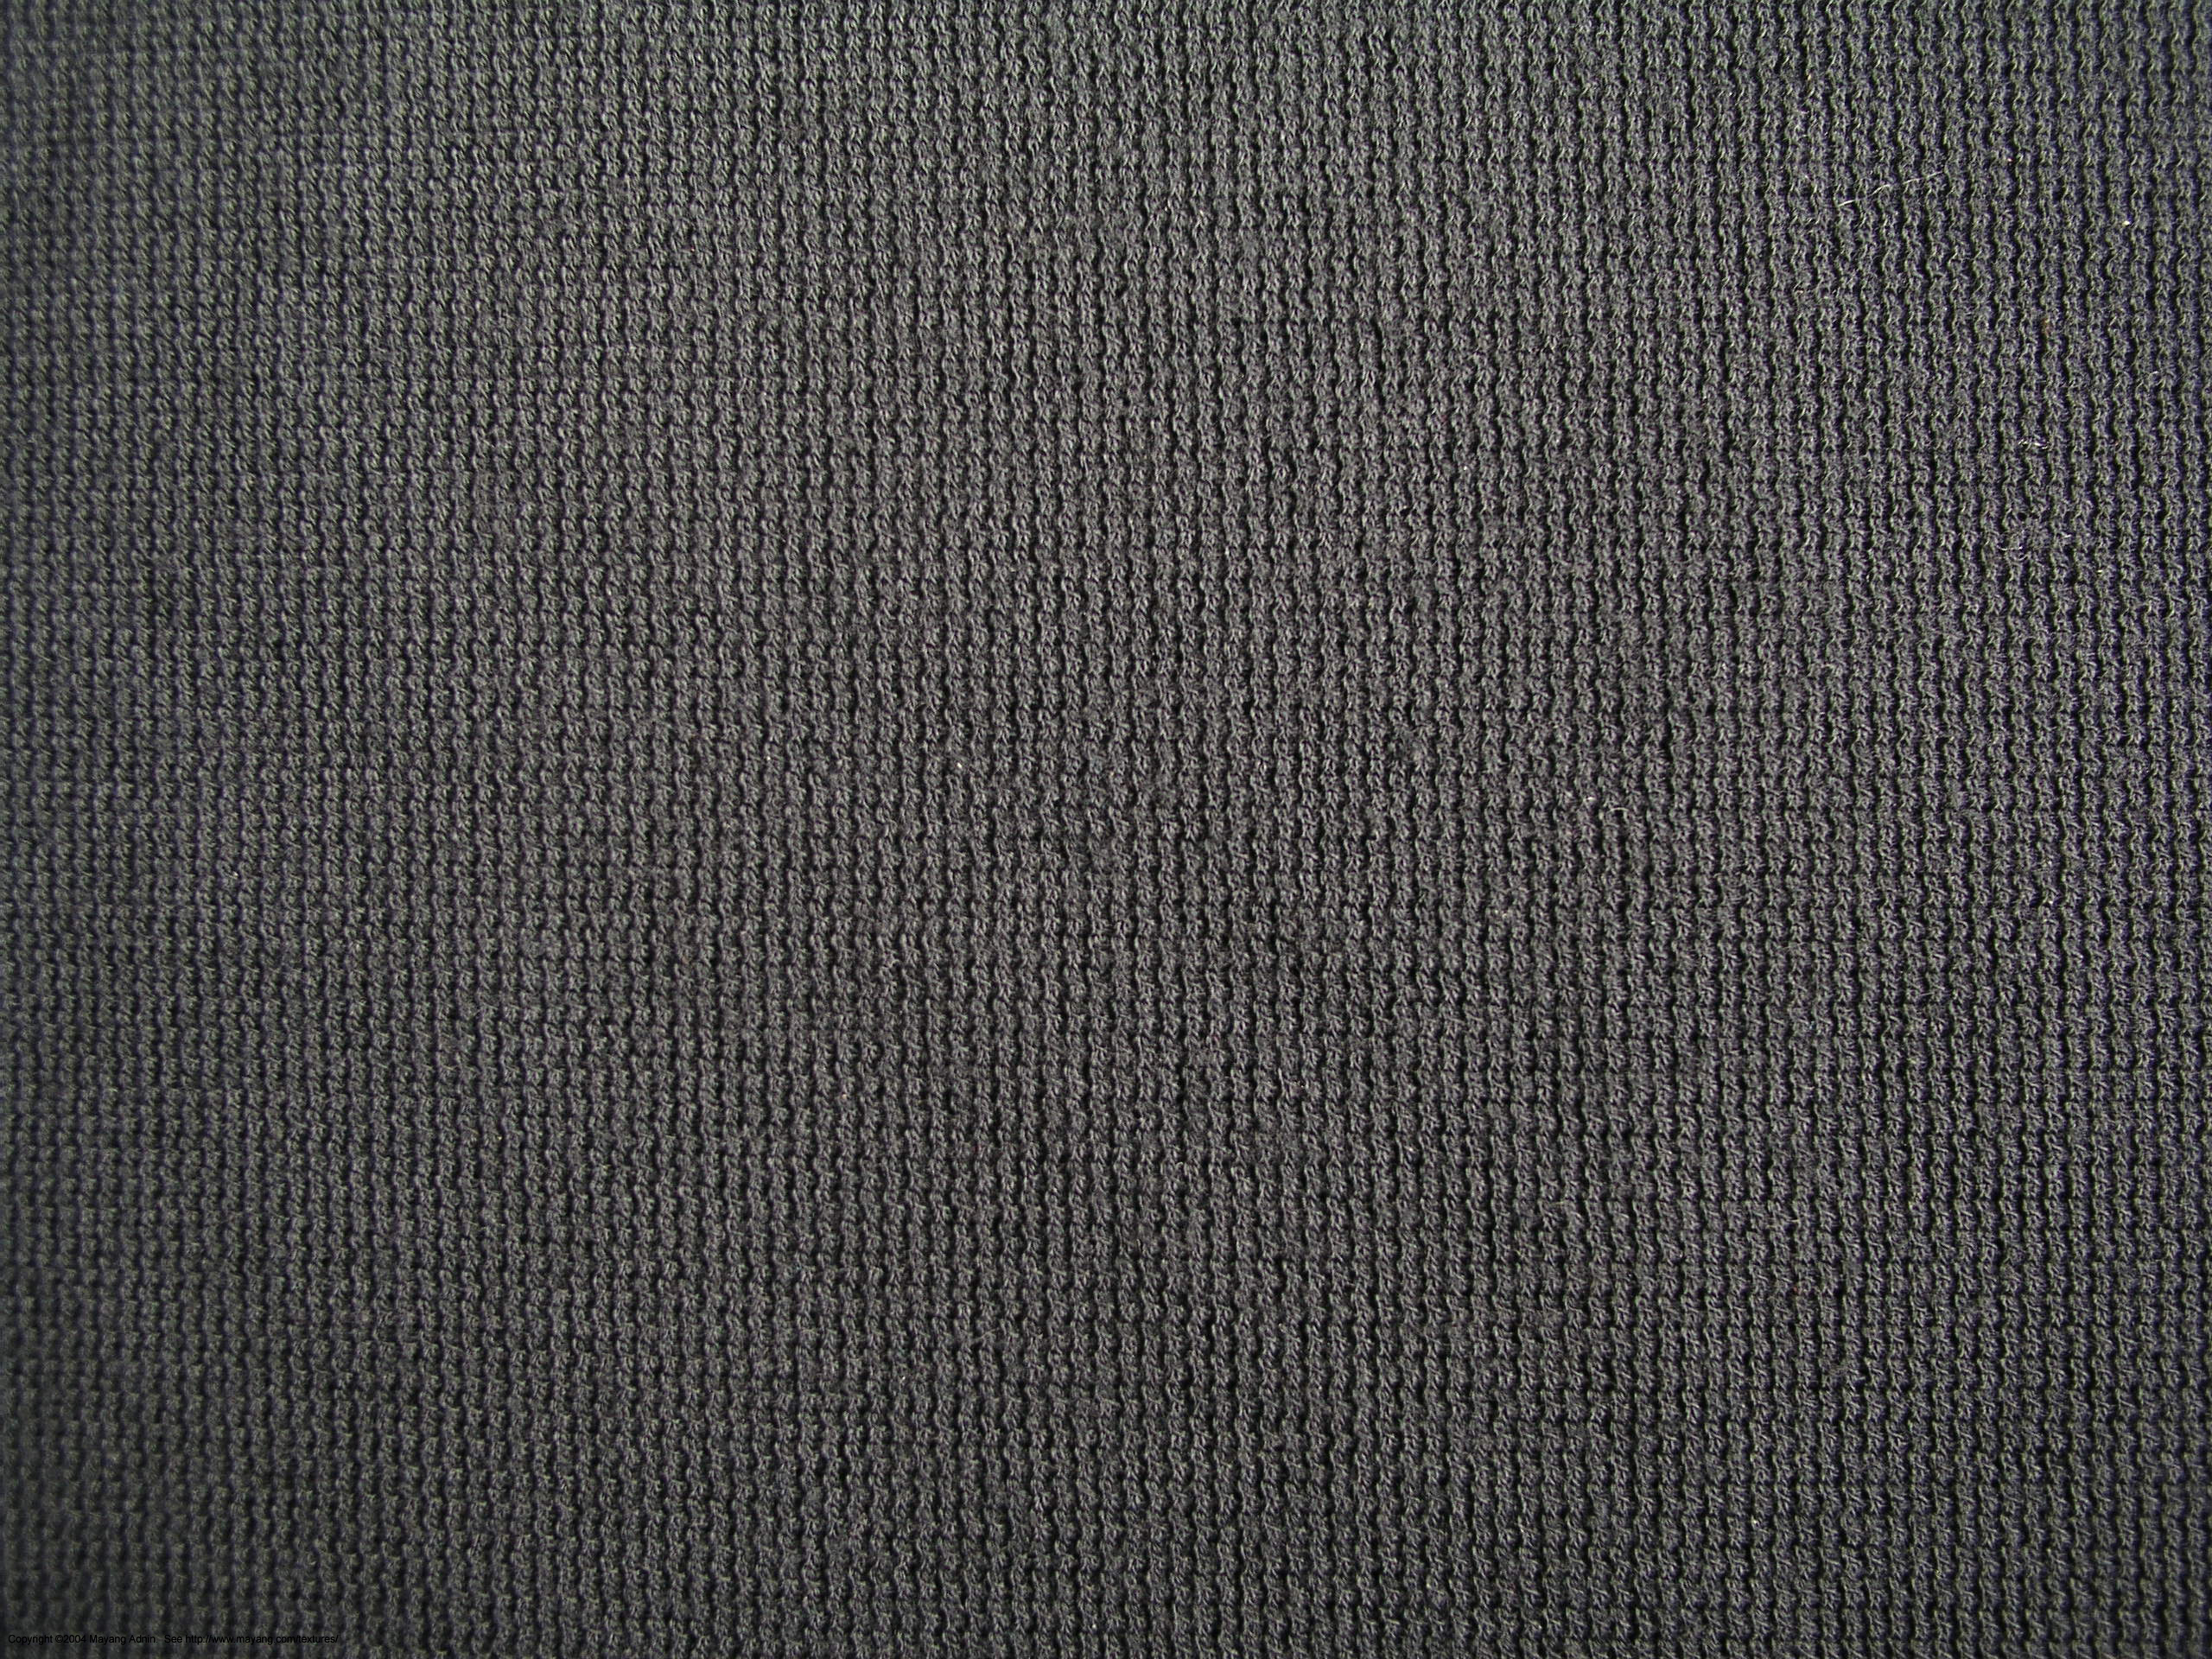 90 Beautiful Fabric Texture For Your Design The Design Work 2560x1920